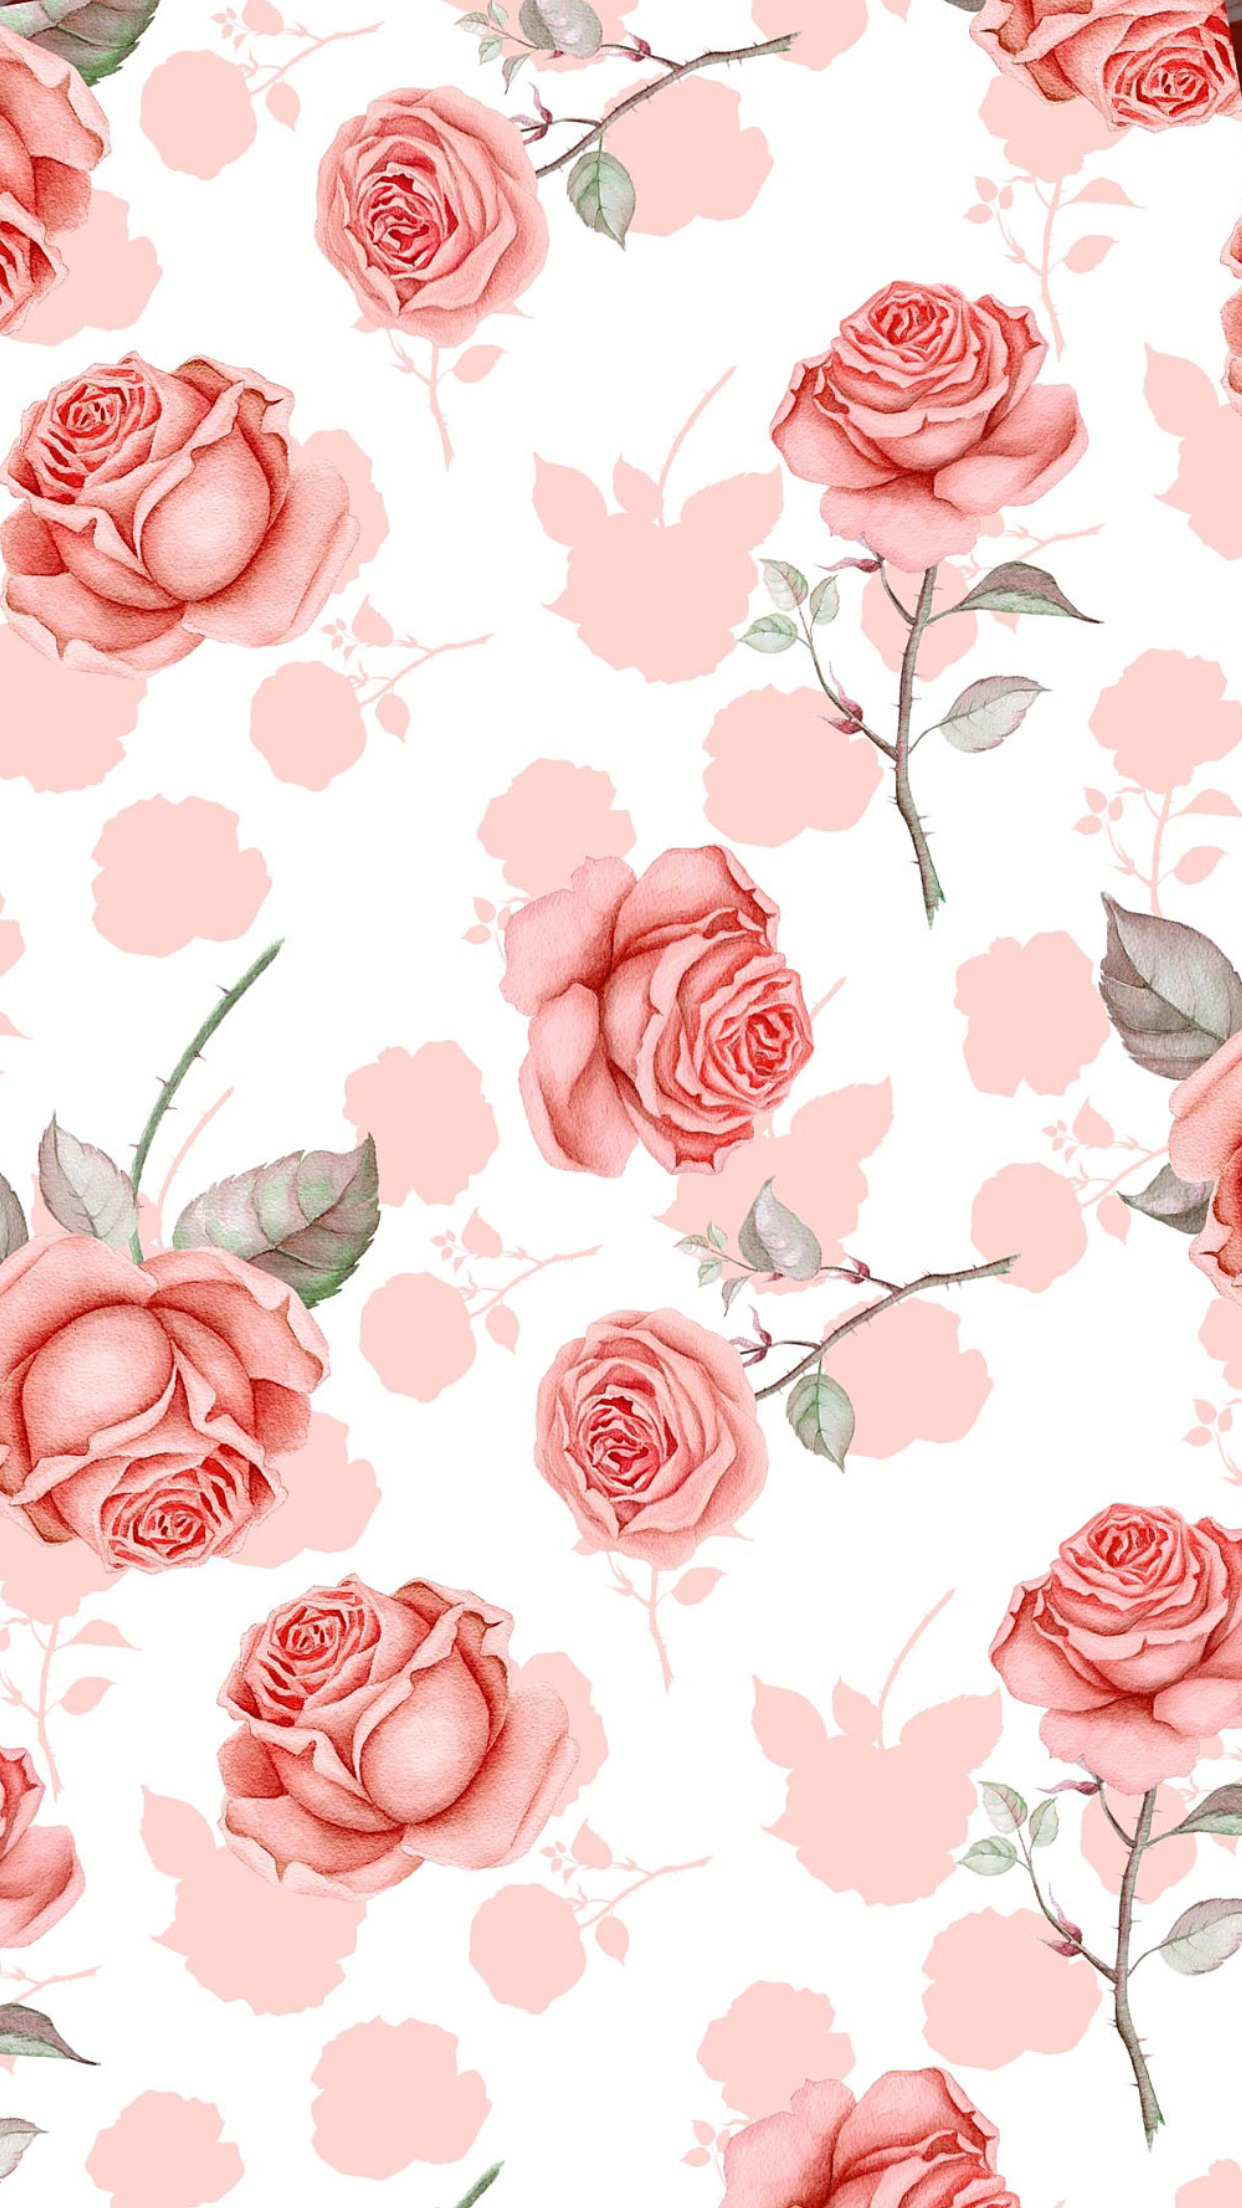 Wallpaper Iphone Iphone Wallpaper Pattern Pink Flowers